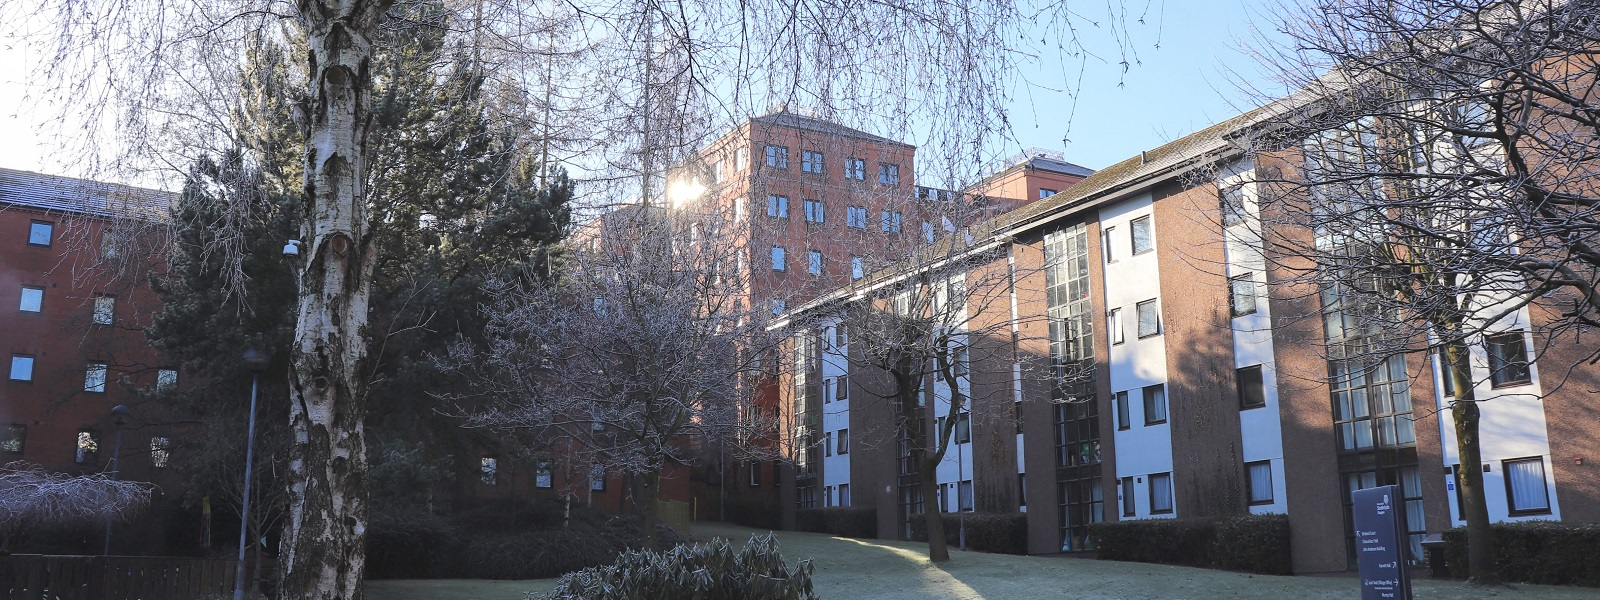 a view of Birkbeck Court in the winter